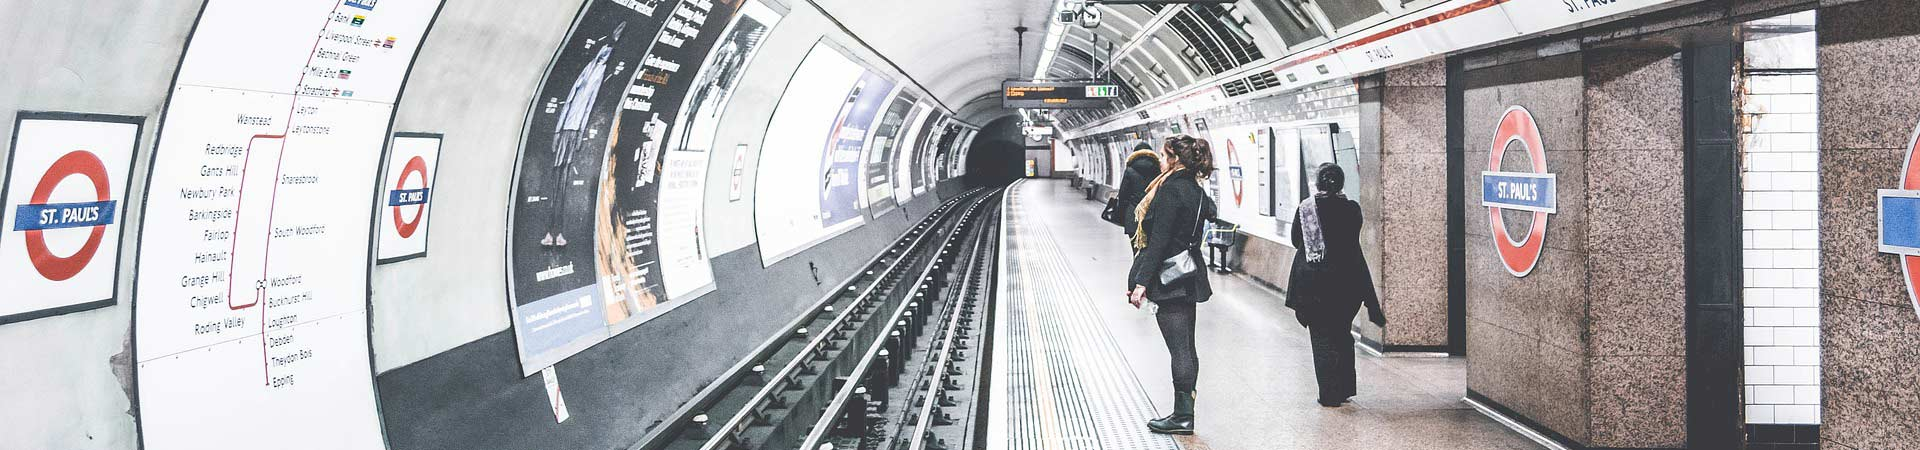 London Underground Subway Station